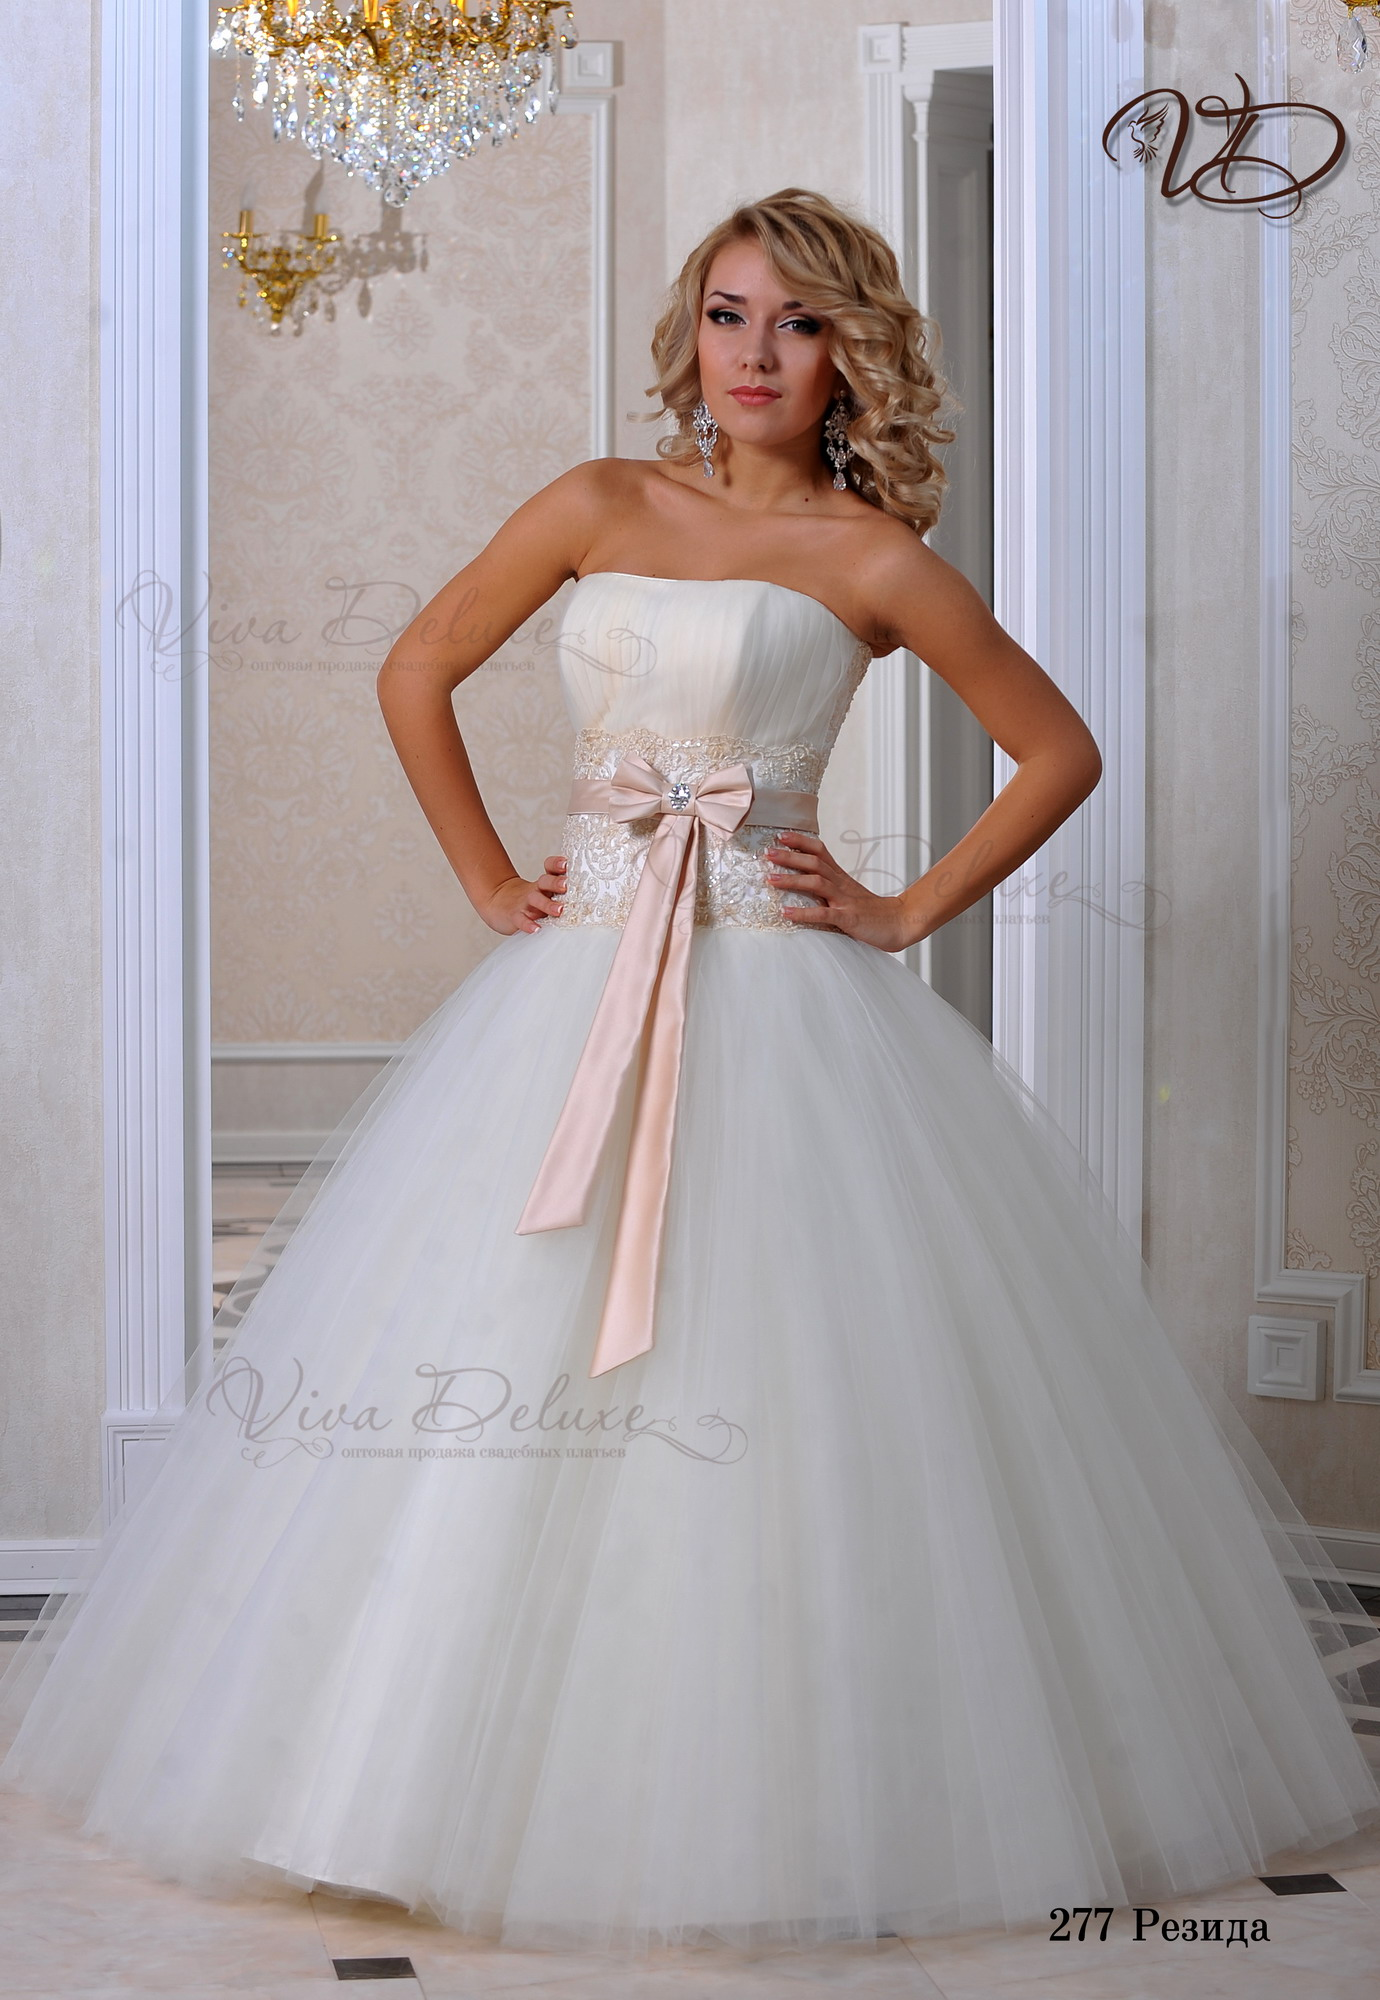 Wedding dresses from the manufacturer